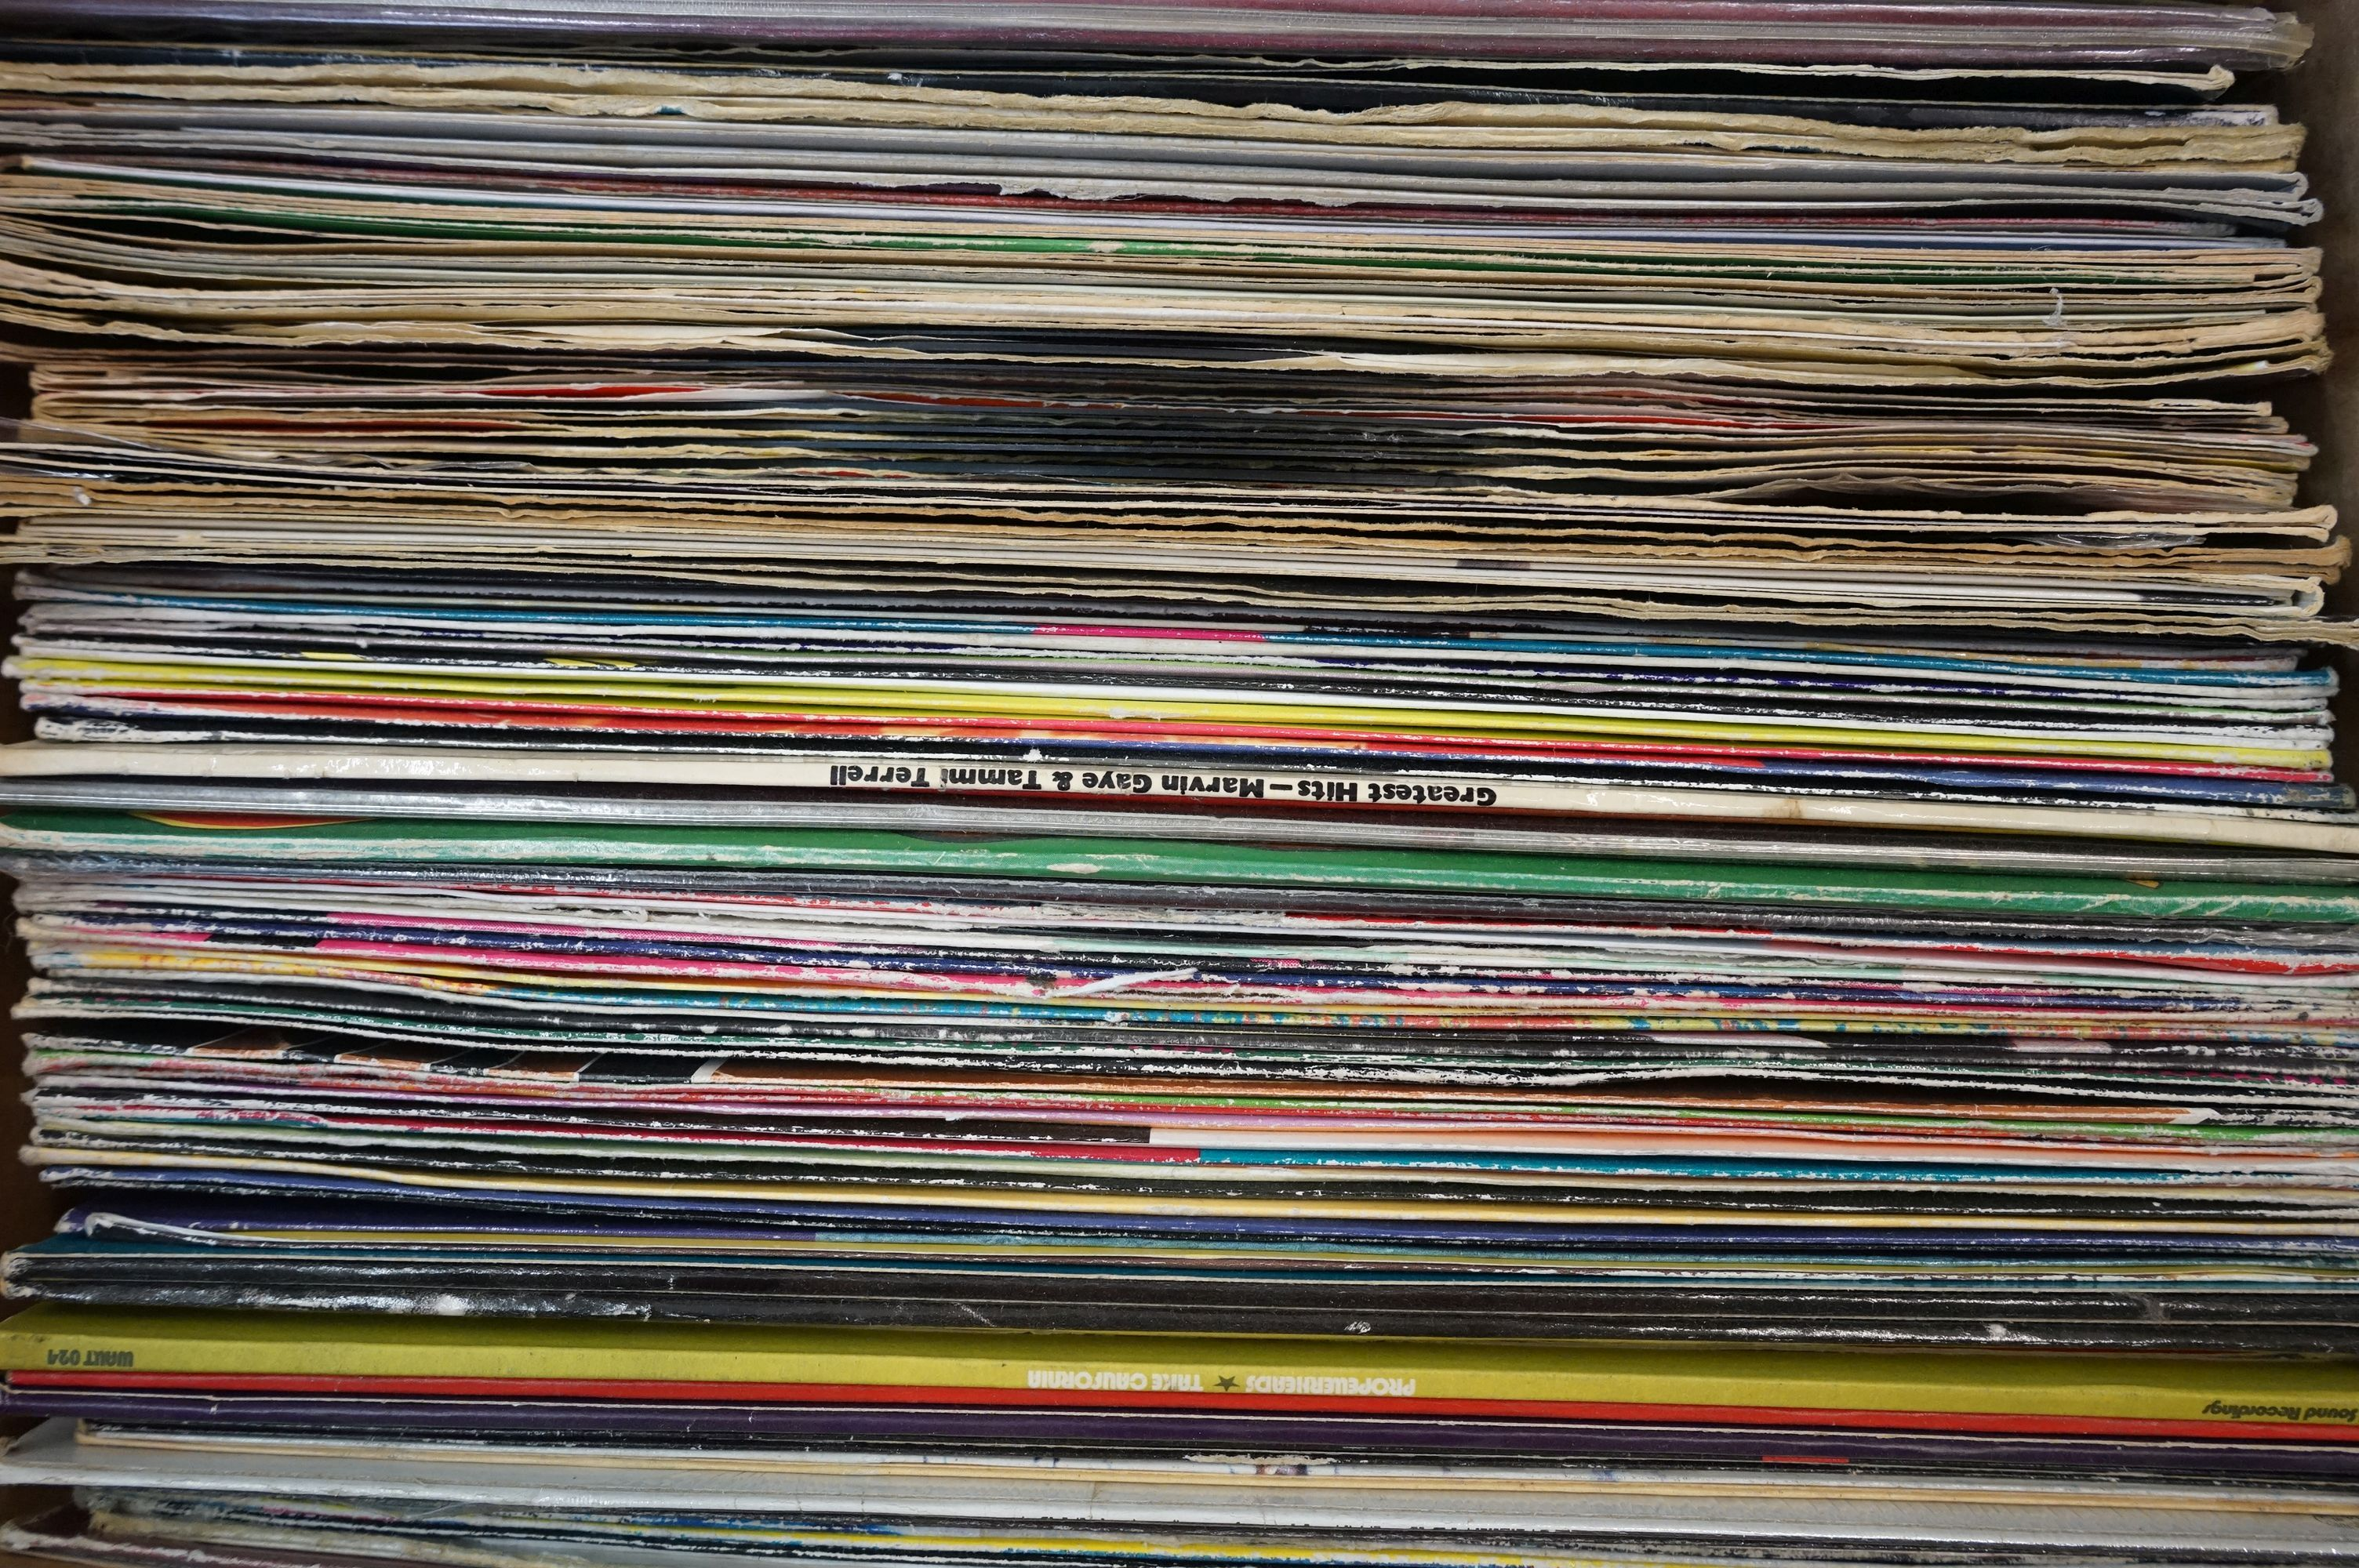 Vinyl - Large collection of LPs spanning the genres and decades (four boxes) - Image 6 of 8